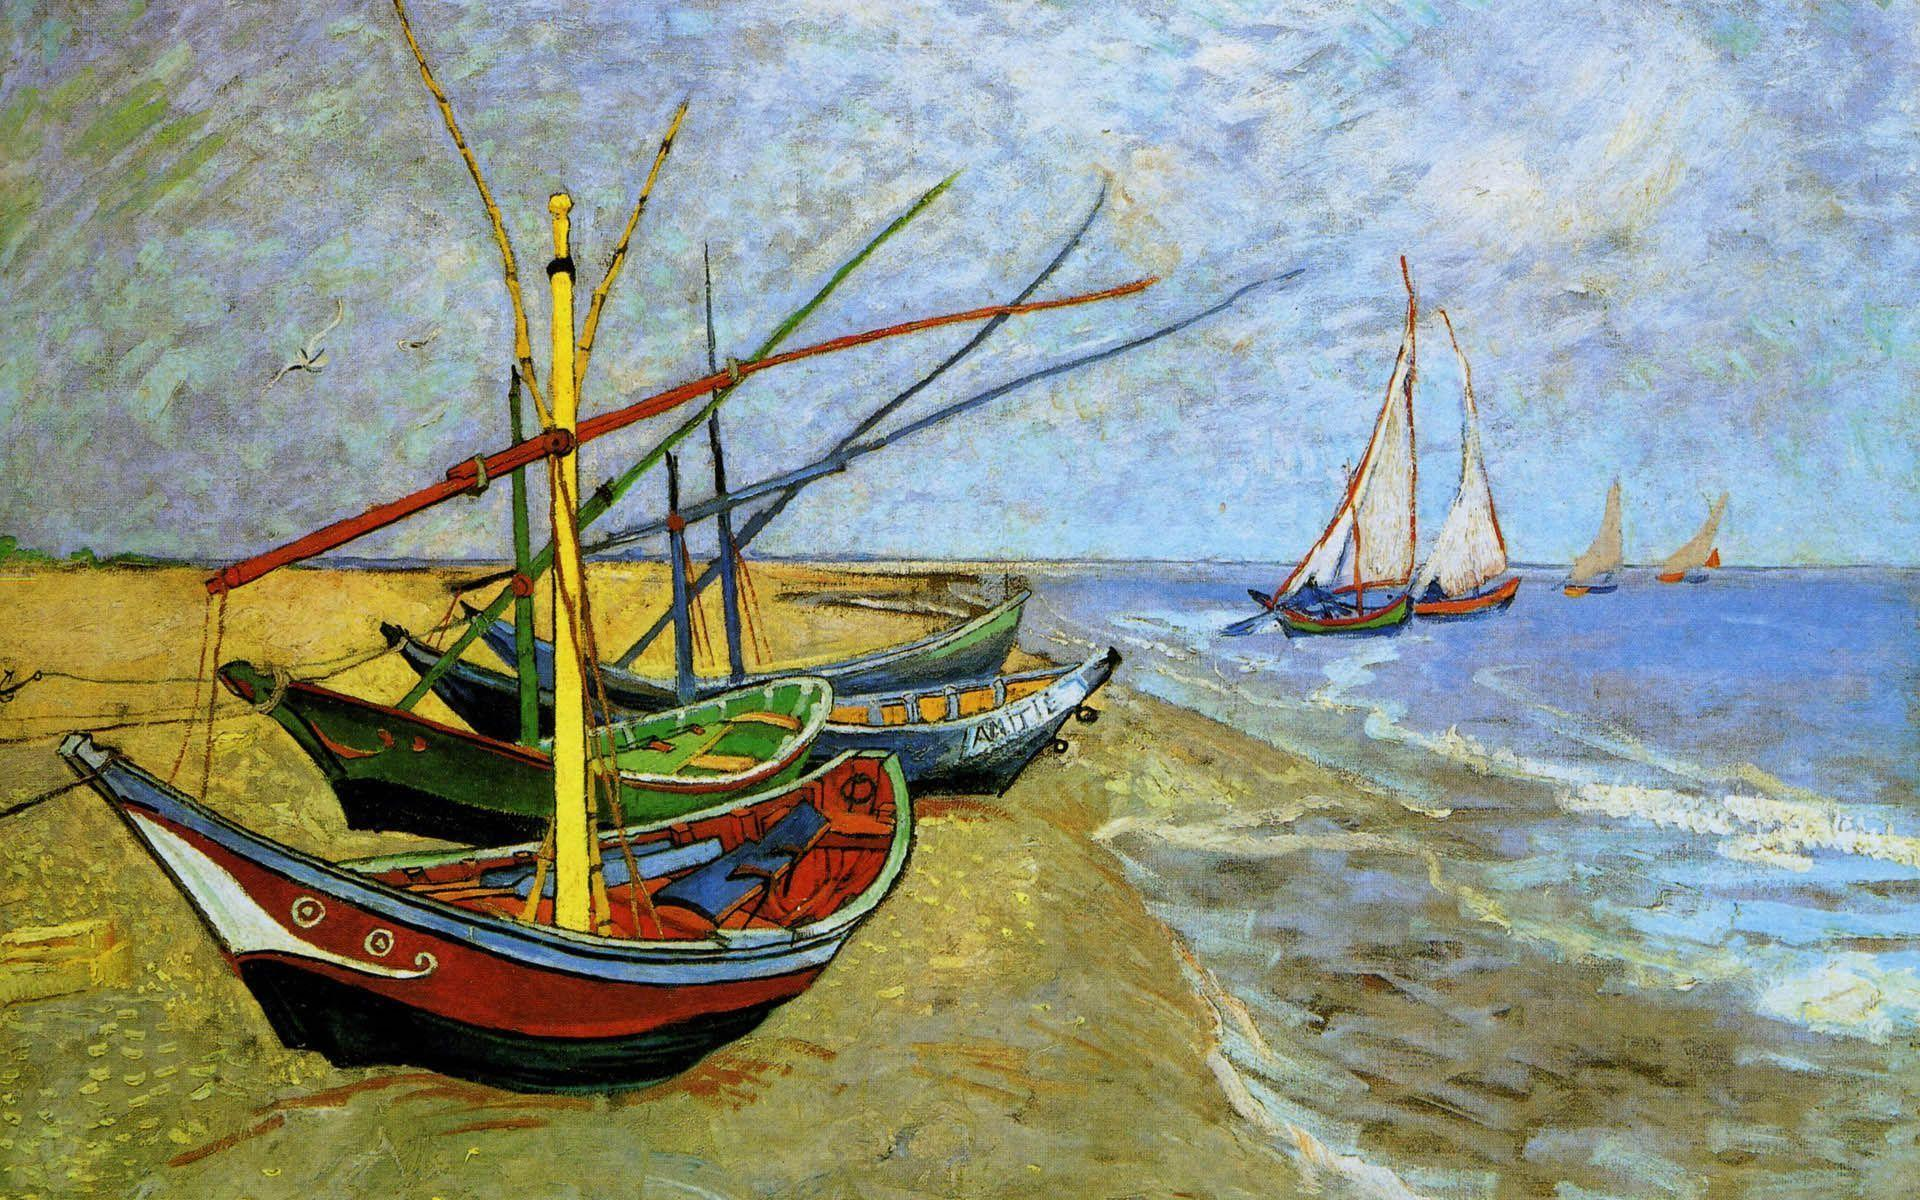 Van Gogh Painting High Resolution Wallpapers Download